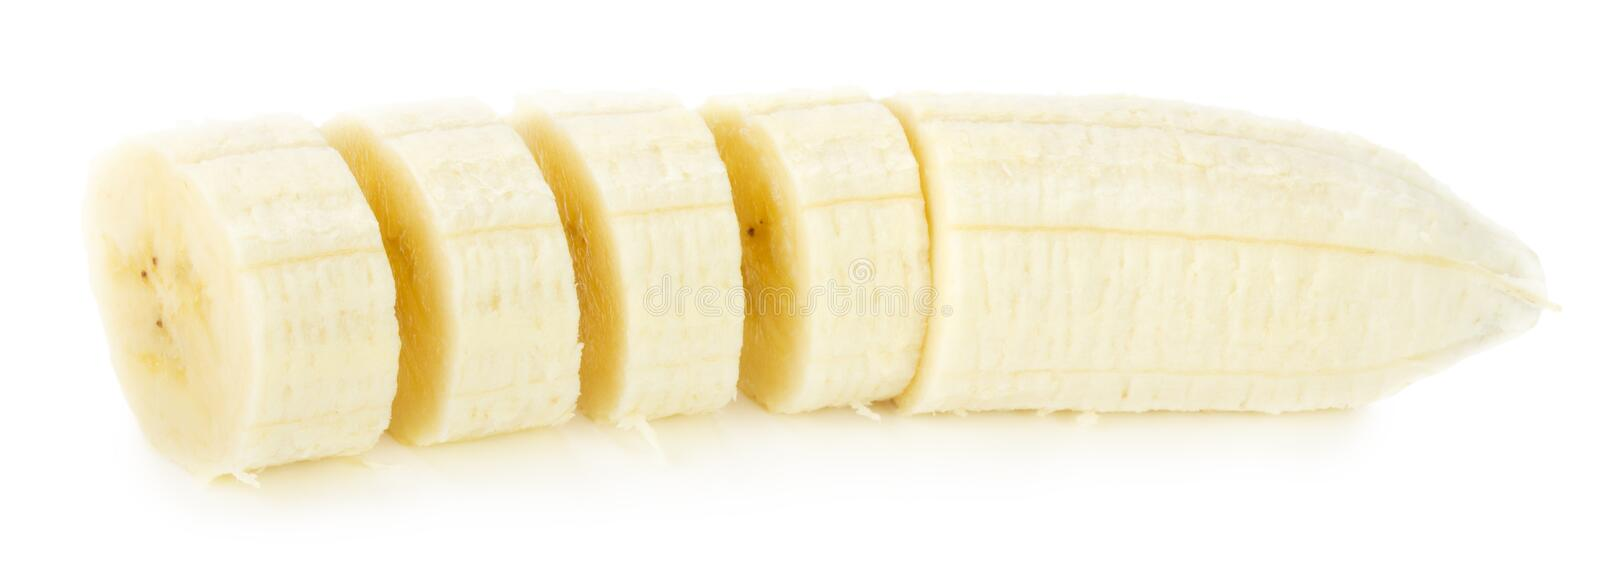 Banana slices isolated on a white background royalty free stock photography